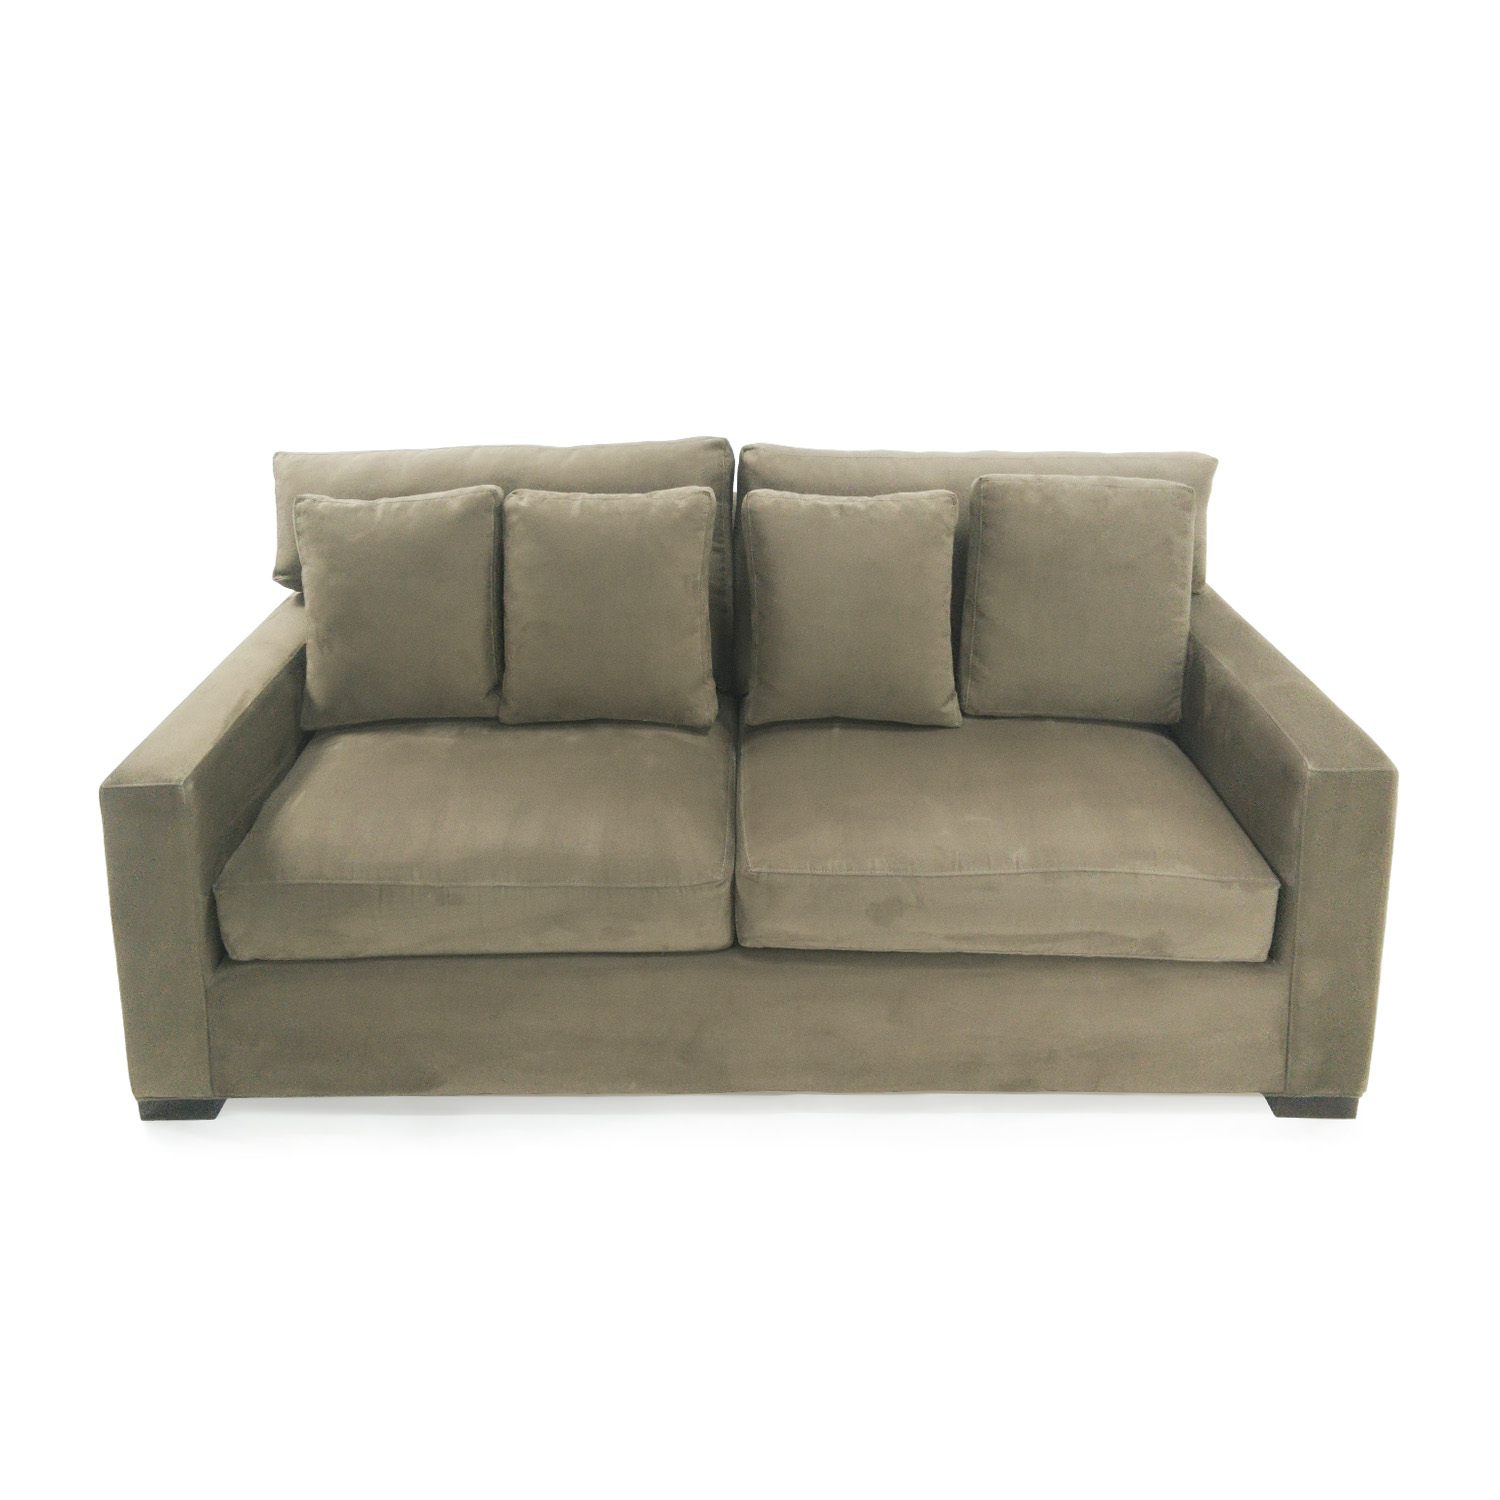 axis sofa reviews scs sofas finance provider crate and barrel s3net sectional